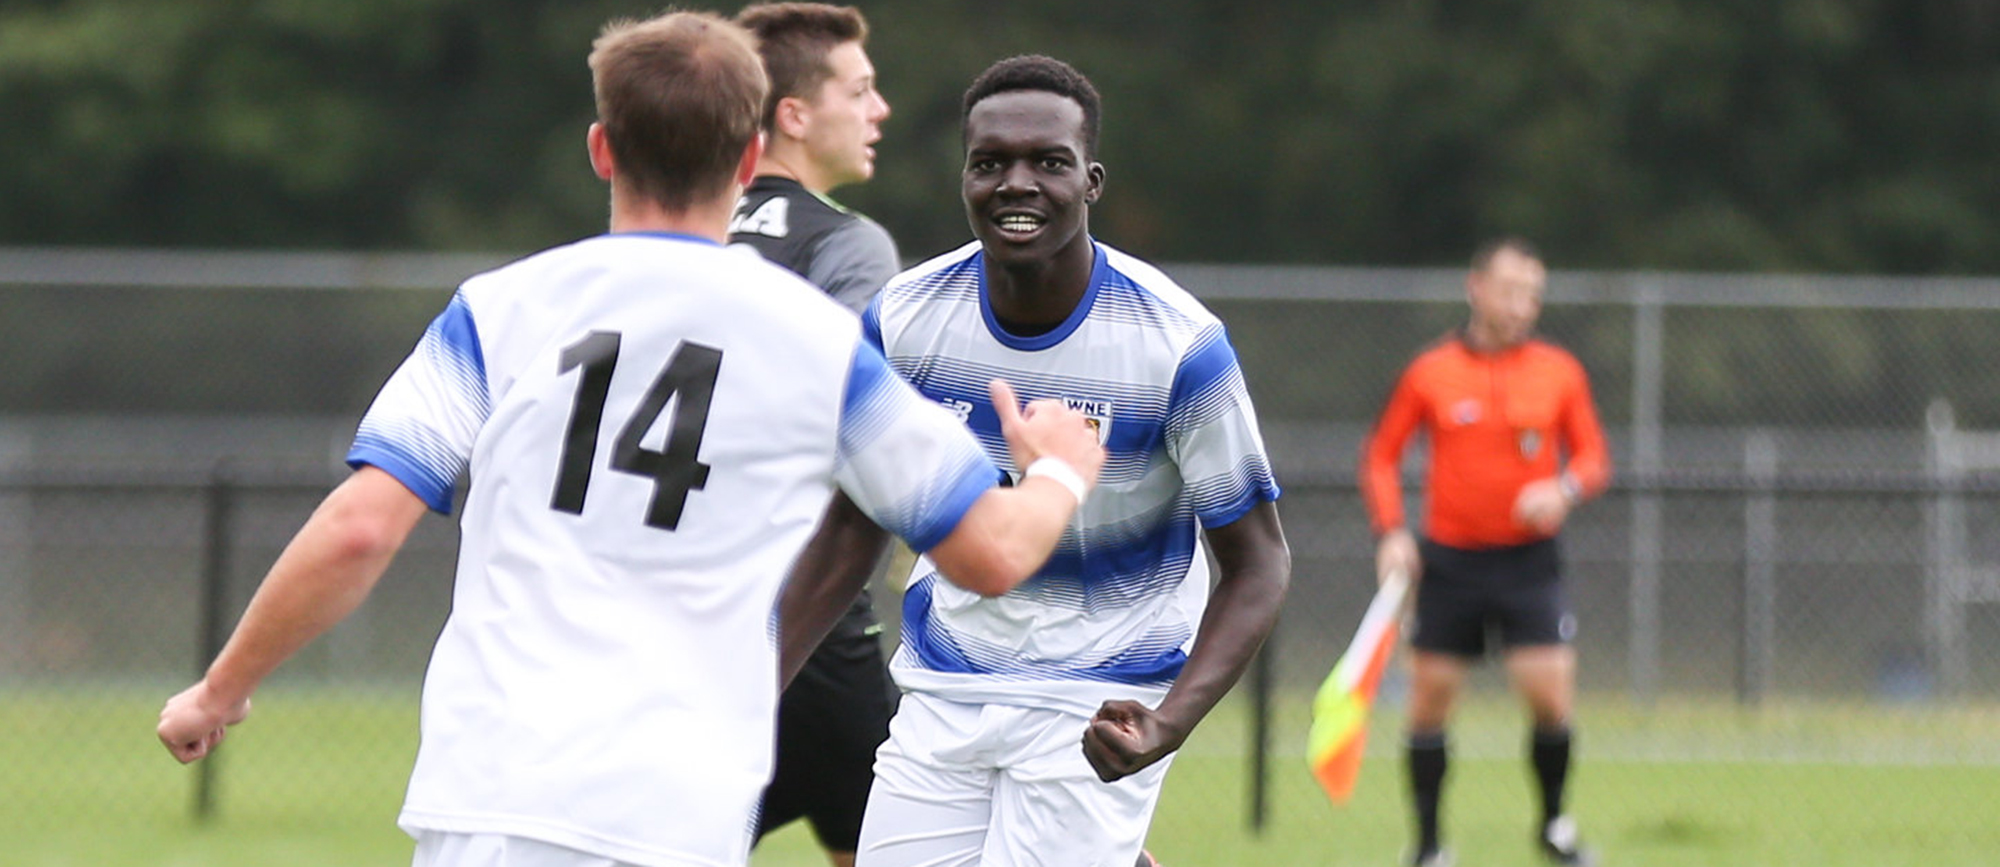 Bryan Atimbo recorded a goal and an assist in Western New England's 3-0 win over Curry on Tuesday. (Photo by Chris Marion)